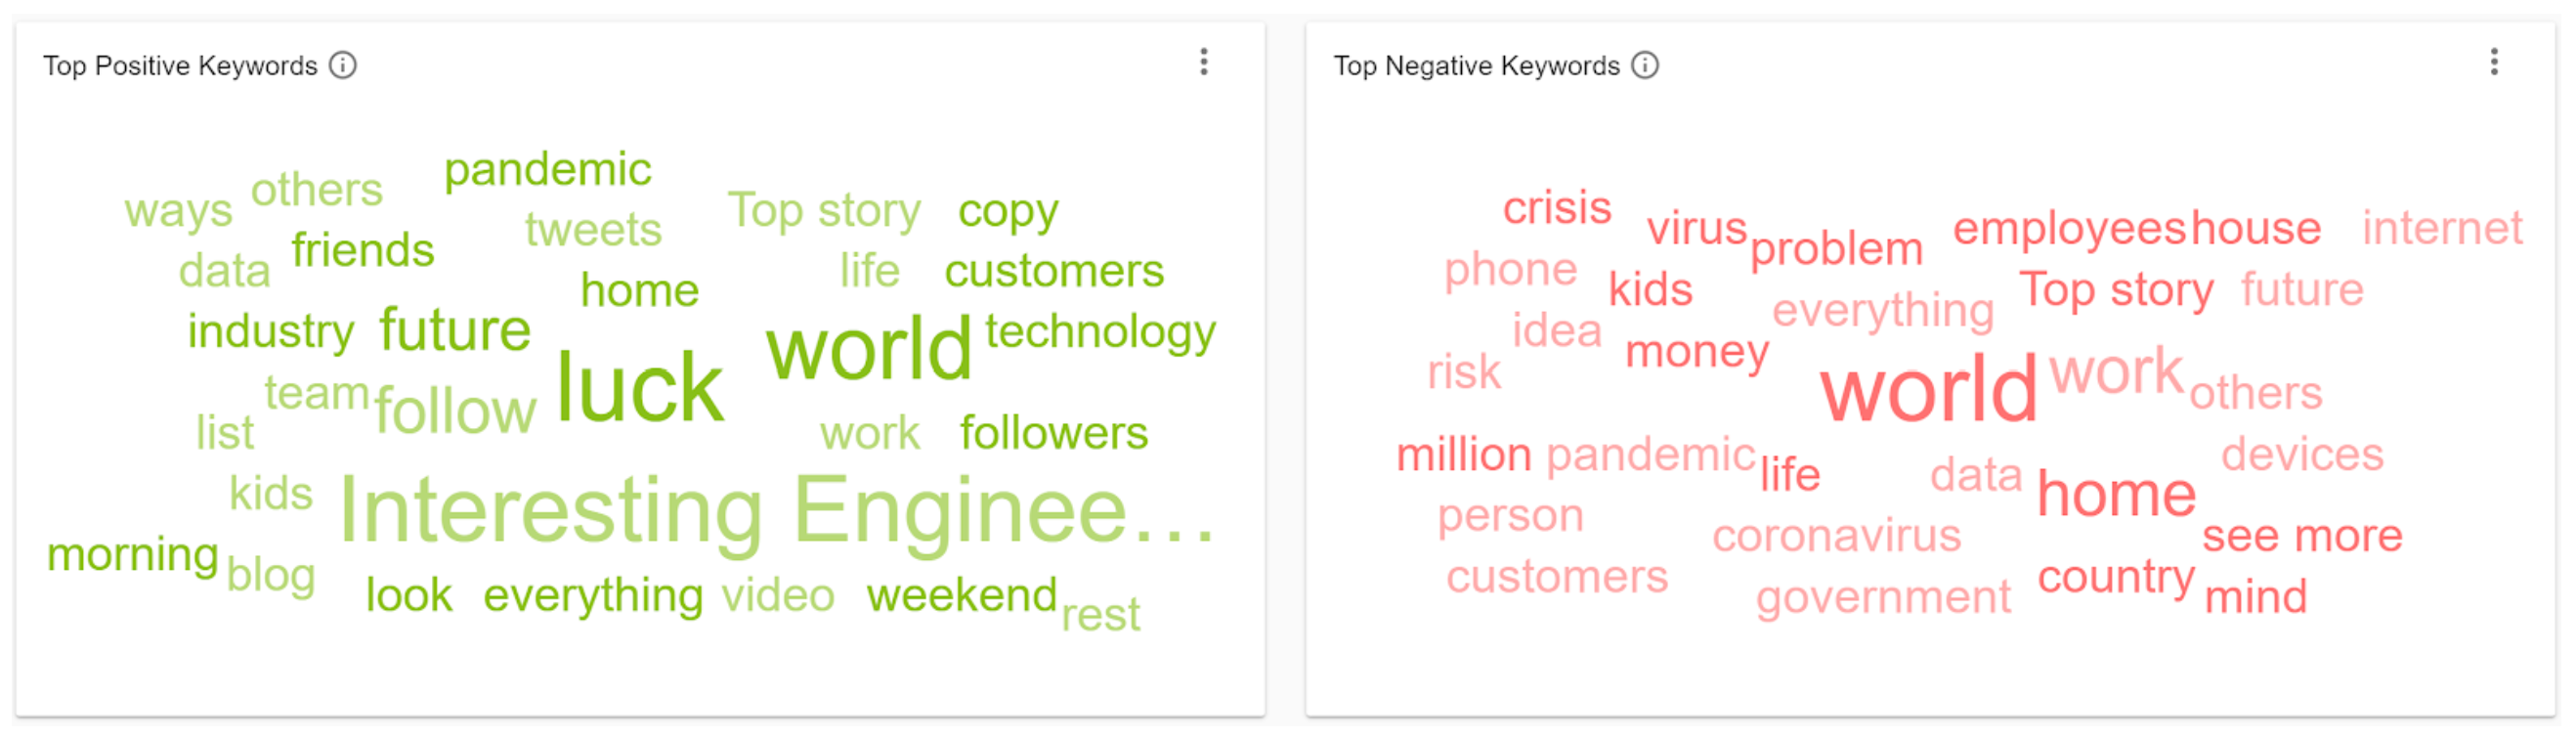 5 Positive Negative Social Listening IOT Keywords